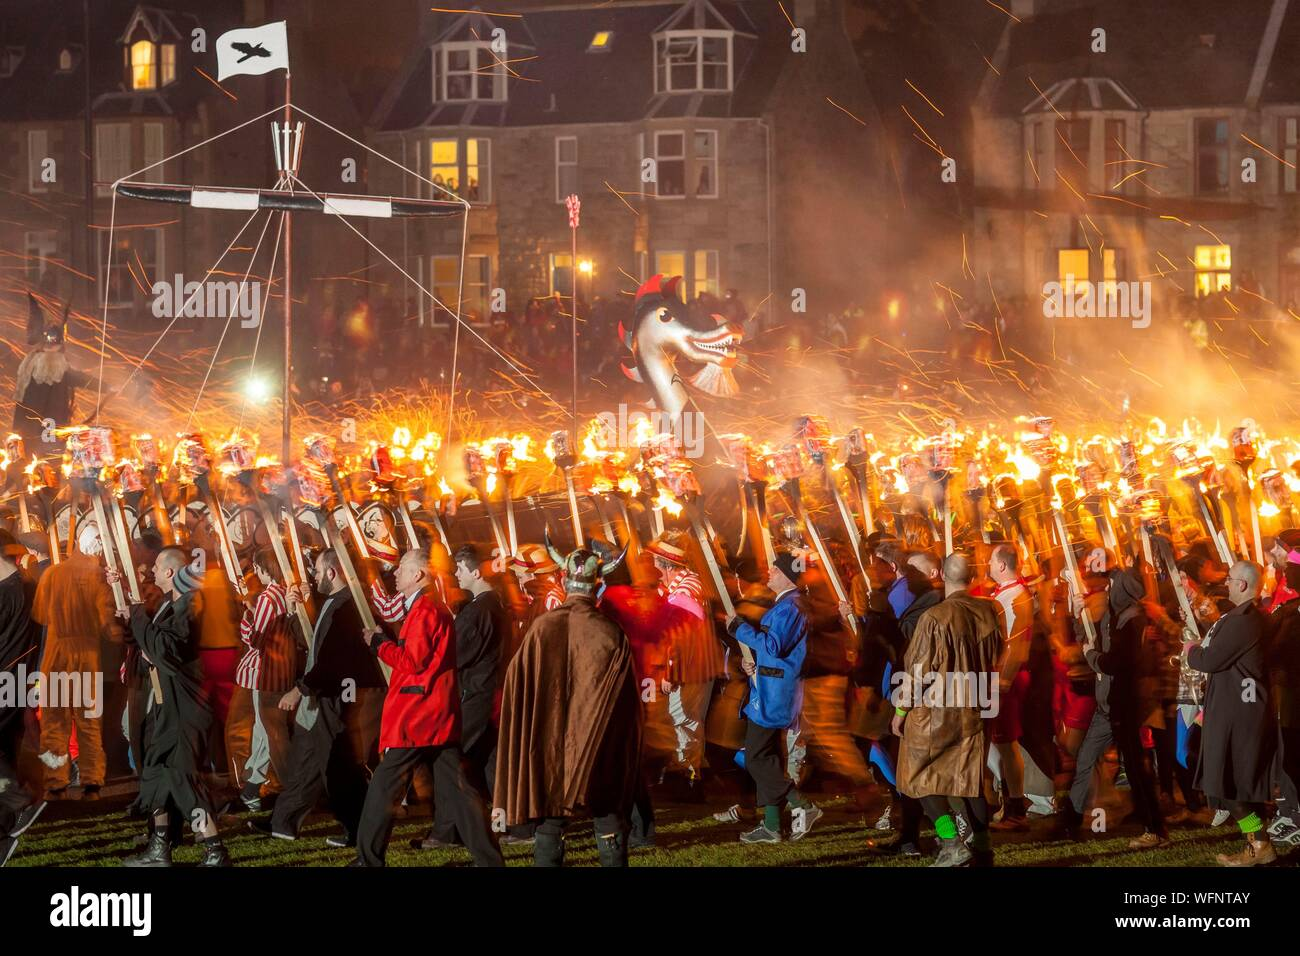 United Kingdom, Scotland, Shetland Islands, Mainland, Lerwick, Up Helly Aa festival, ritual burning down of the viking longship by throwing torches Stock Photo